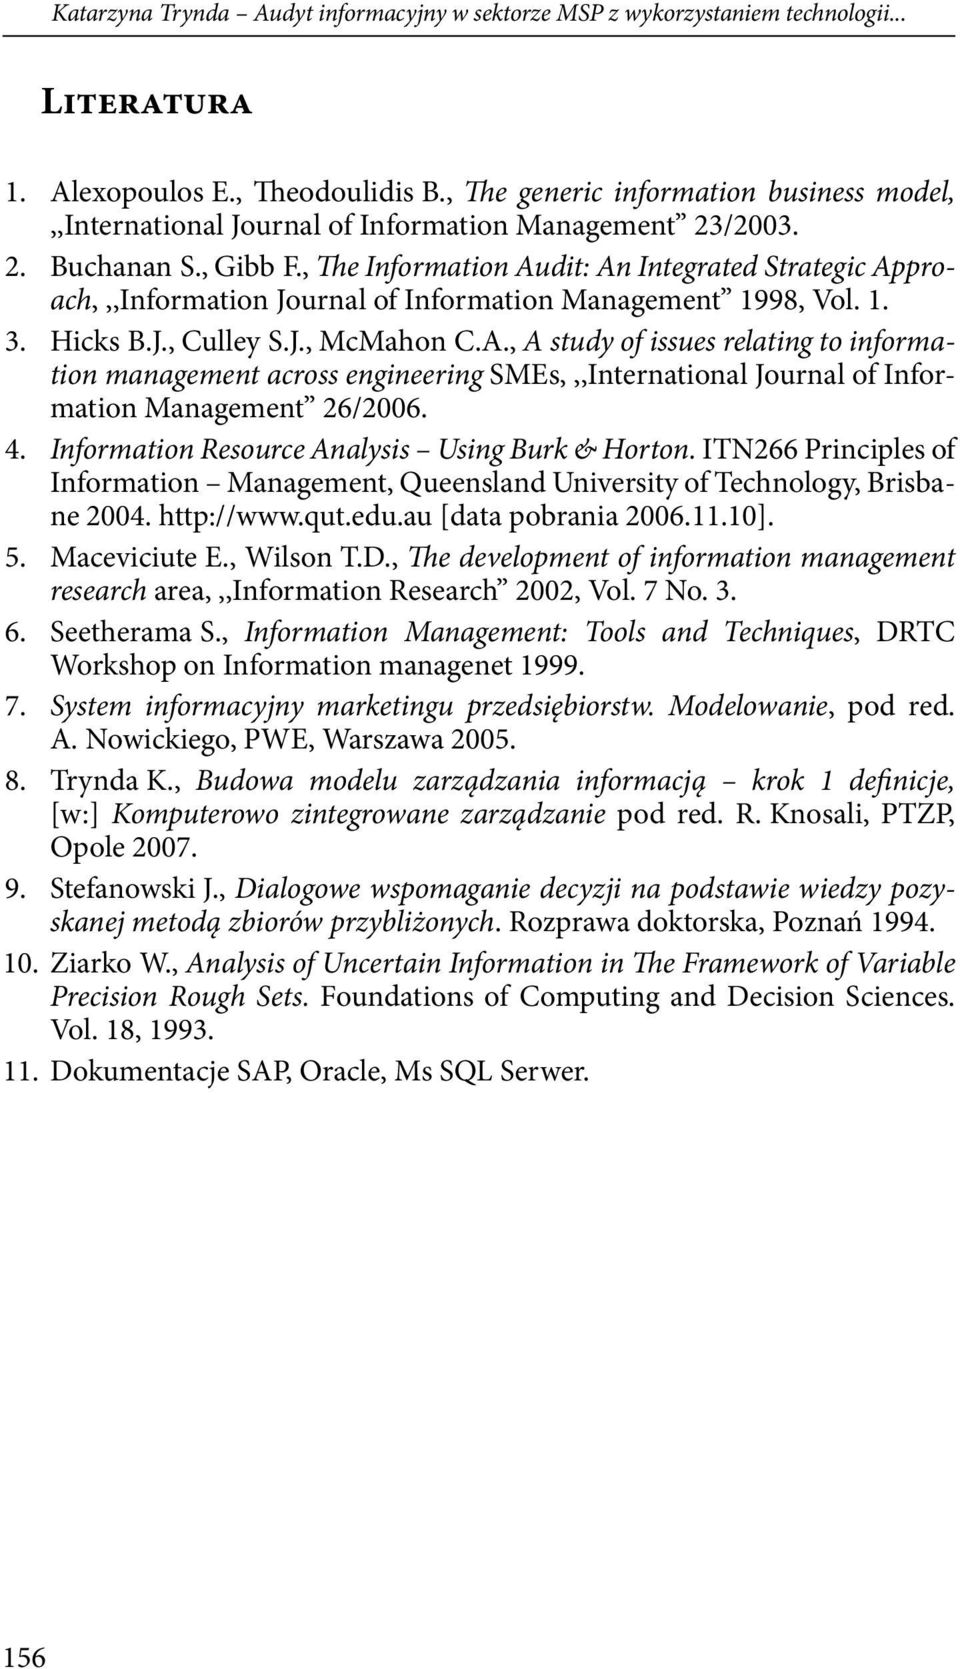 , The Information Audit: An Integrated Strategic Approach,,,Information Journal of Information Management 1998, Vol. 1. 3. Hicks B.J., Culley S.J., McMahon C.A., A study of issues relating to information management across engineering SMEs,,,International Journal of Information Management 26/2006.